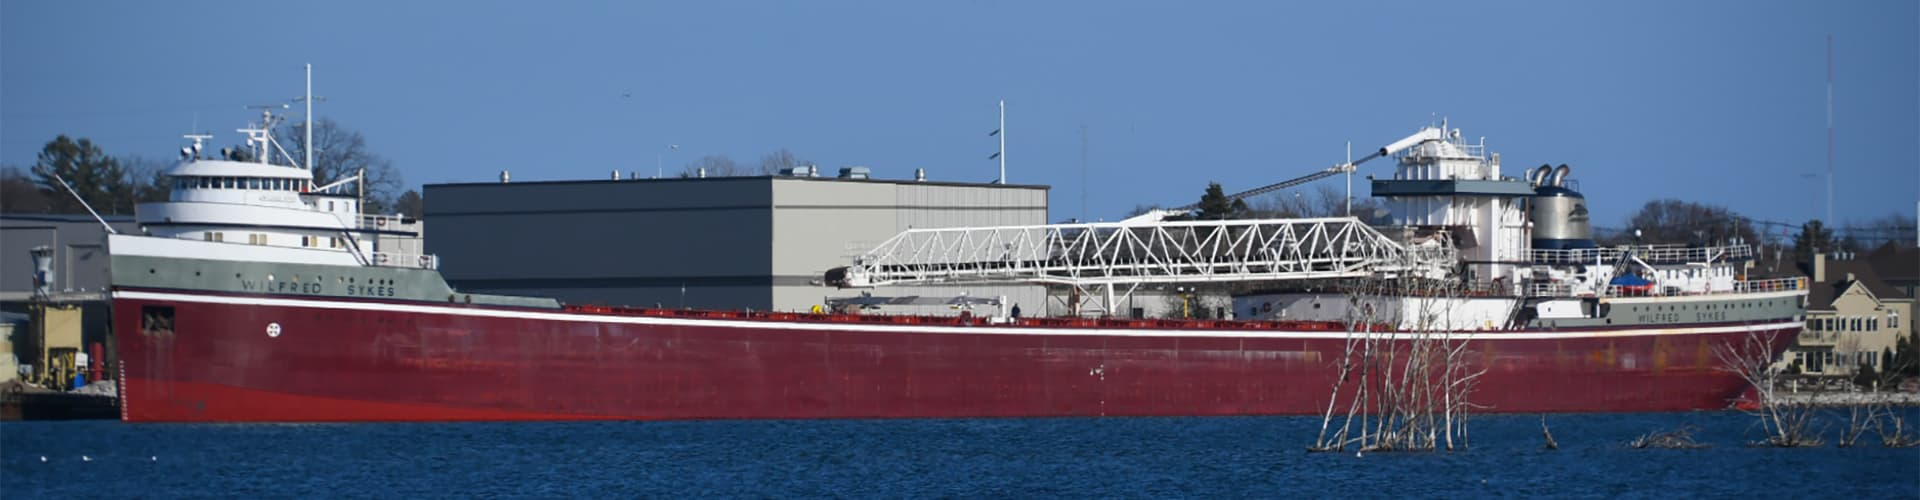 Wilfred Sykes ship in harbor